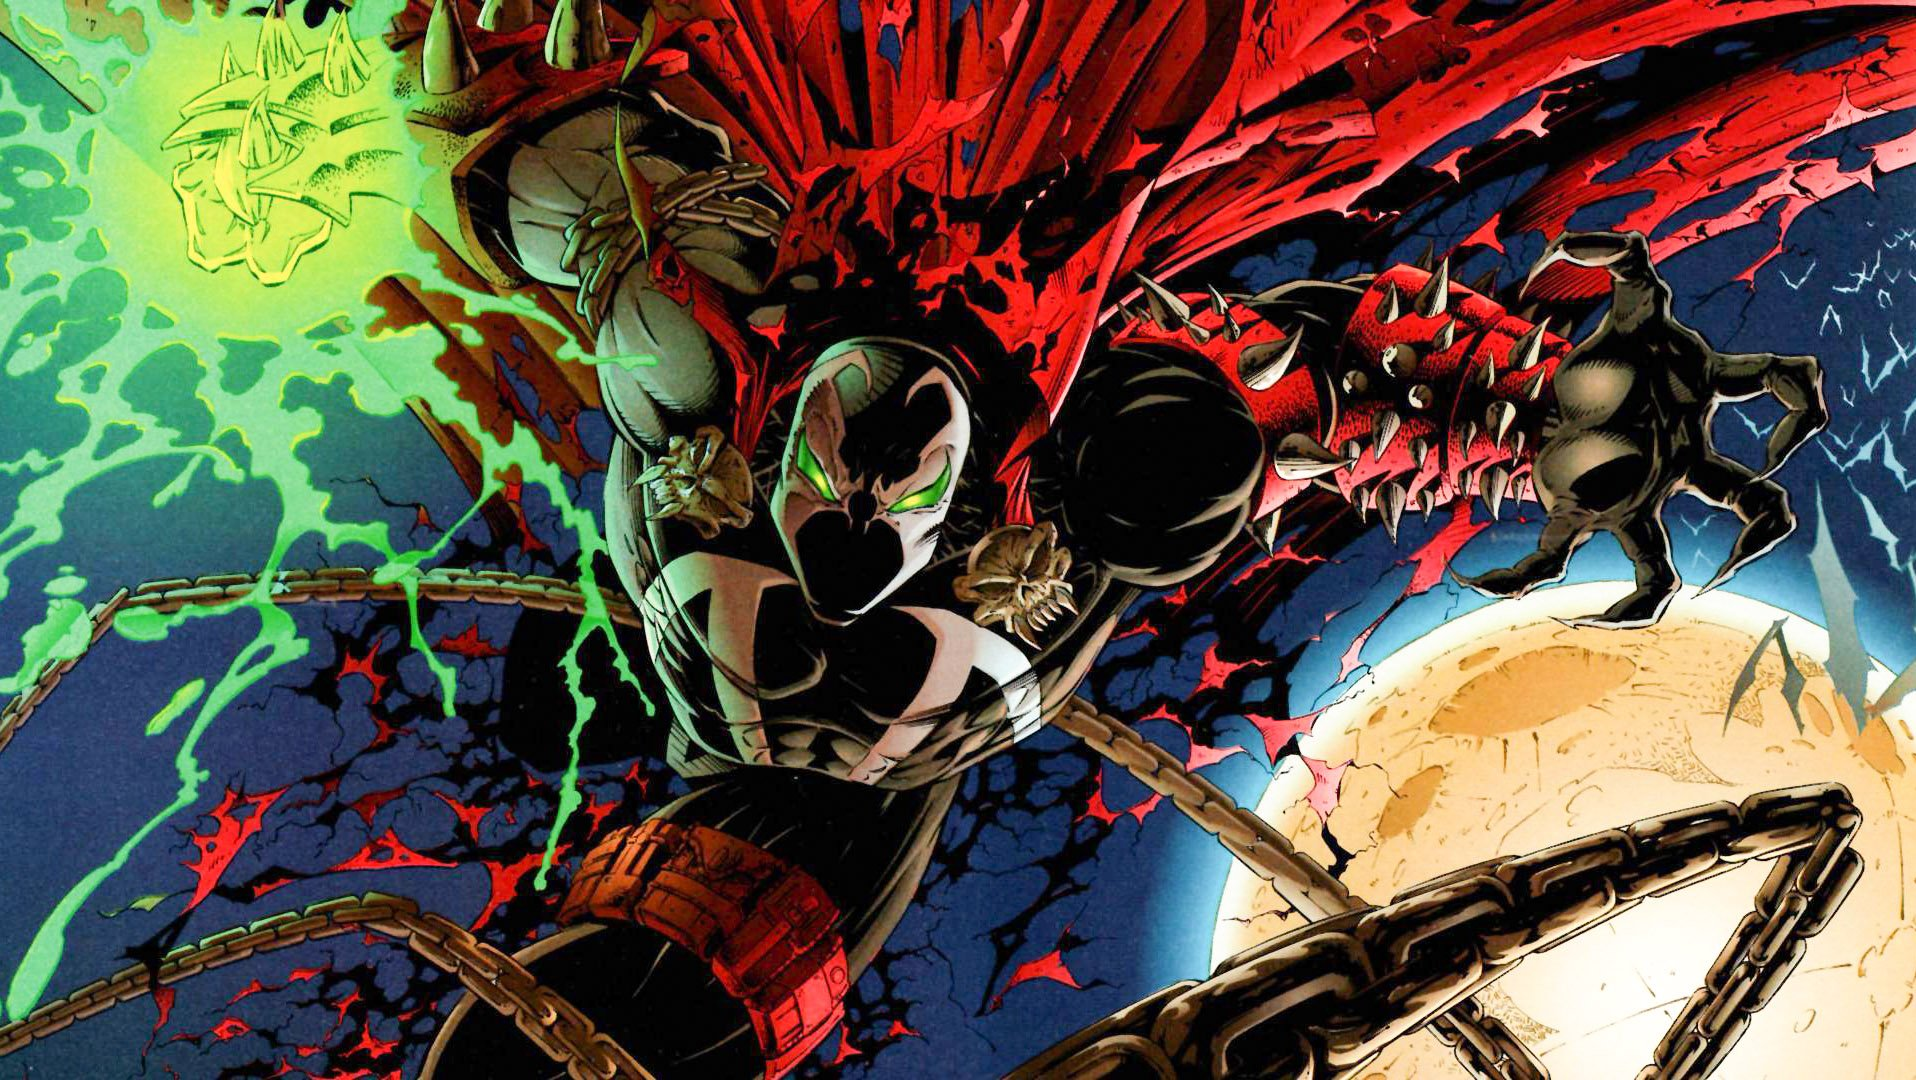 Jamie Foxx will play Spawn, upgrading his comic roles from The Abysmal Spider-Man screenshot